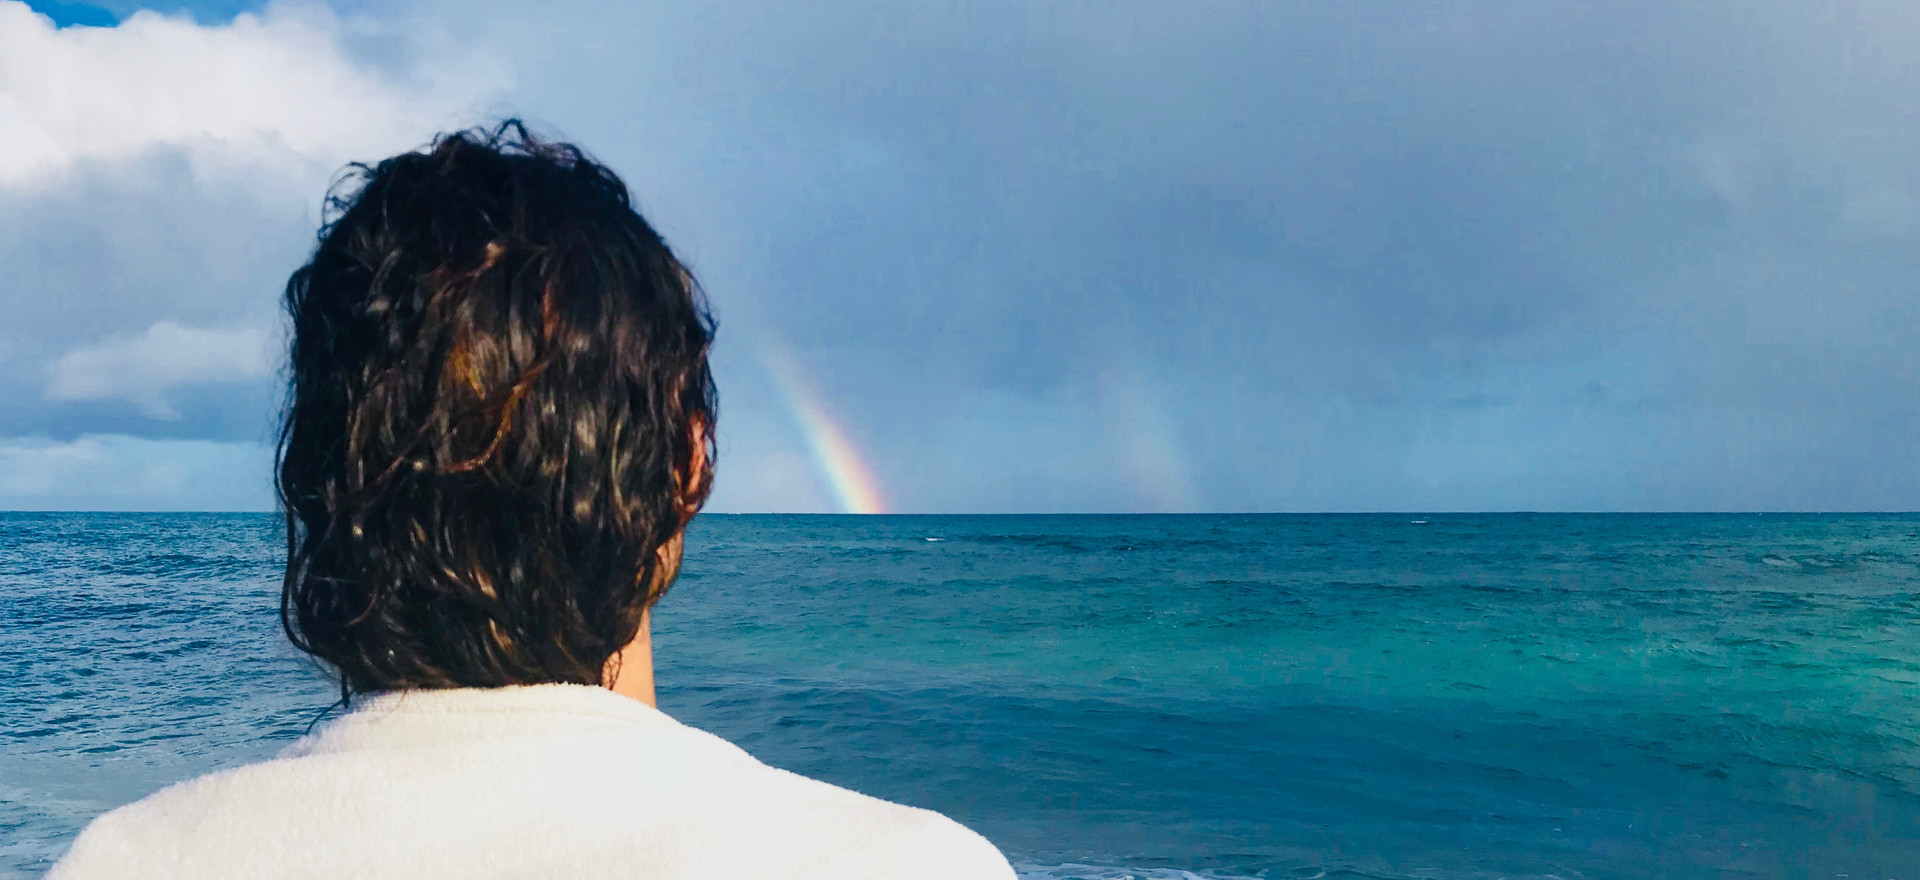 """I knew a miracle was taking place as I saw a double rainbow formed off the coast during my SeaHealings Shamanic Journey in nature it completely transformed my life. I am feeling so much lighter it was truly magical""  ​  Arnesto - North Shore Maui"